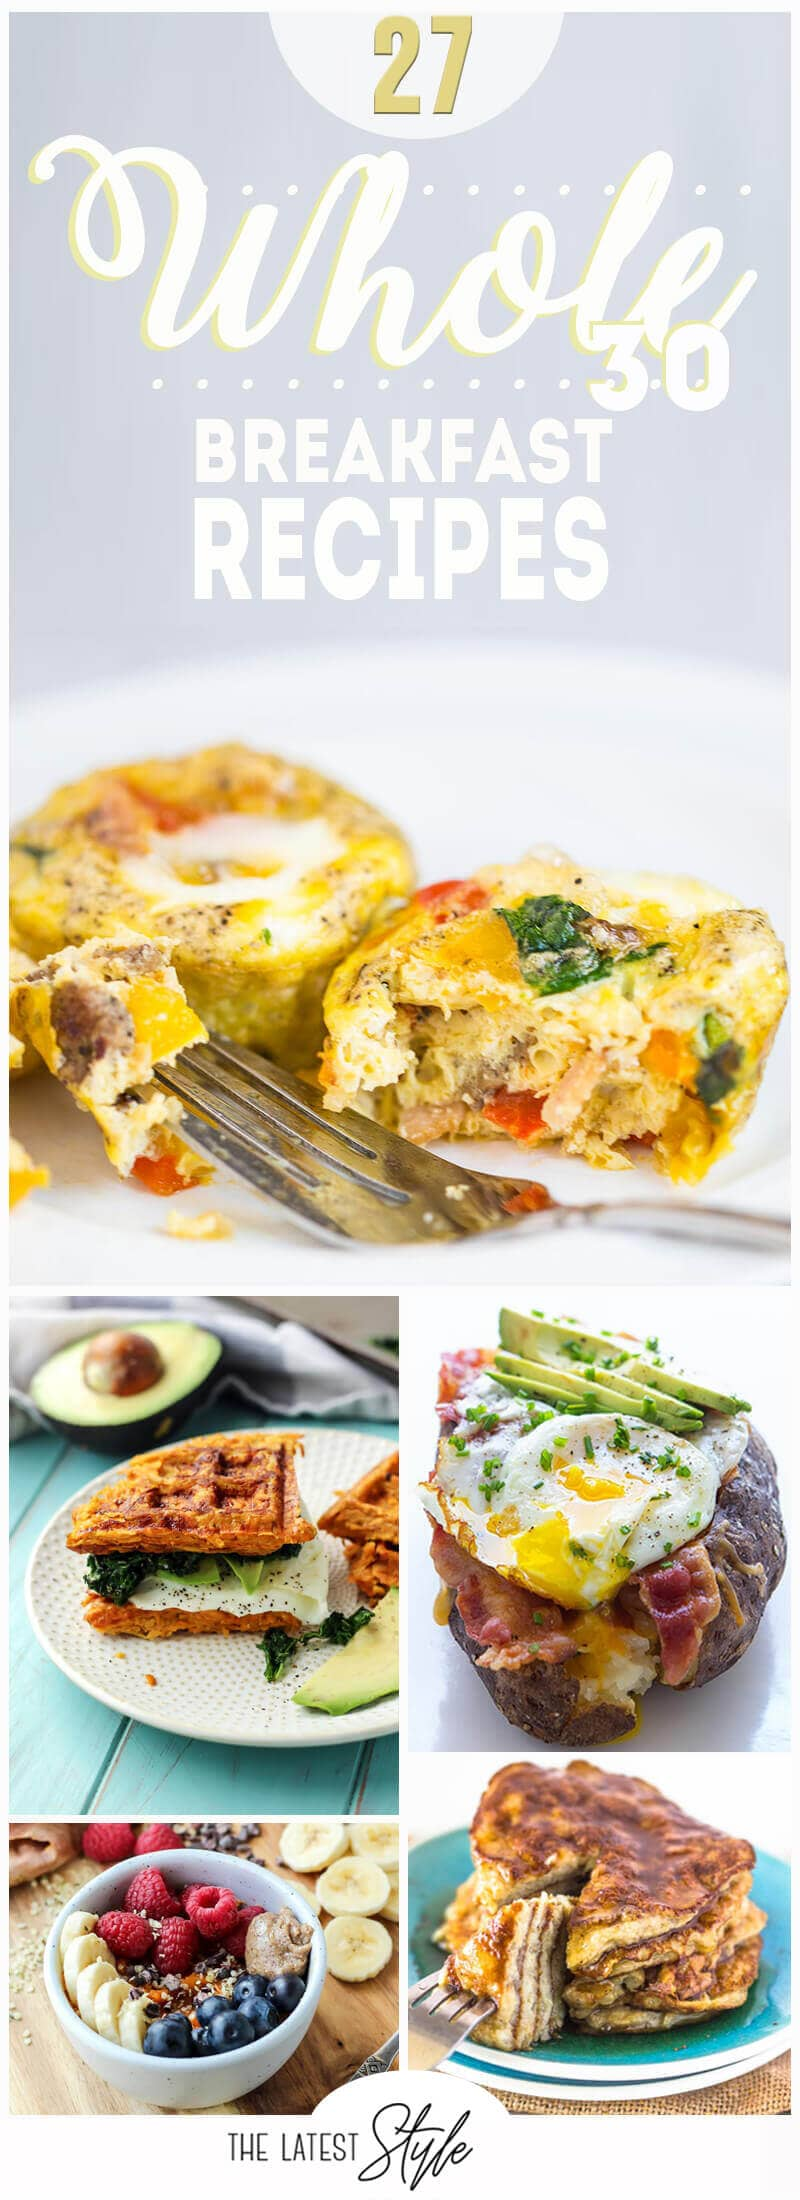 27 Awesome Whole 30 Breakfast Recipes for a Healthy Morning